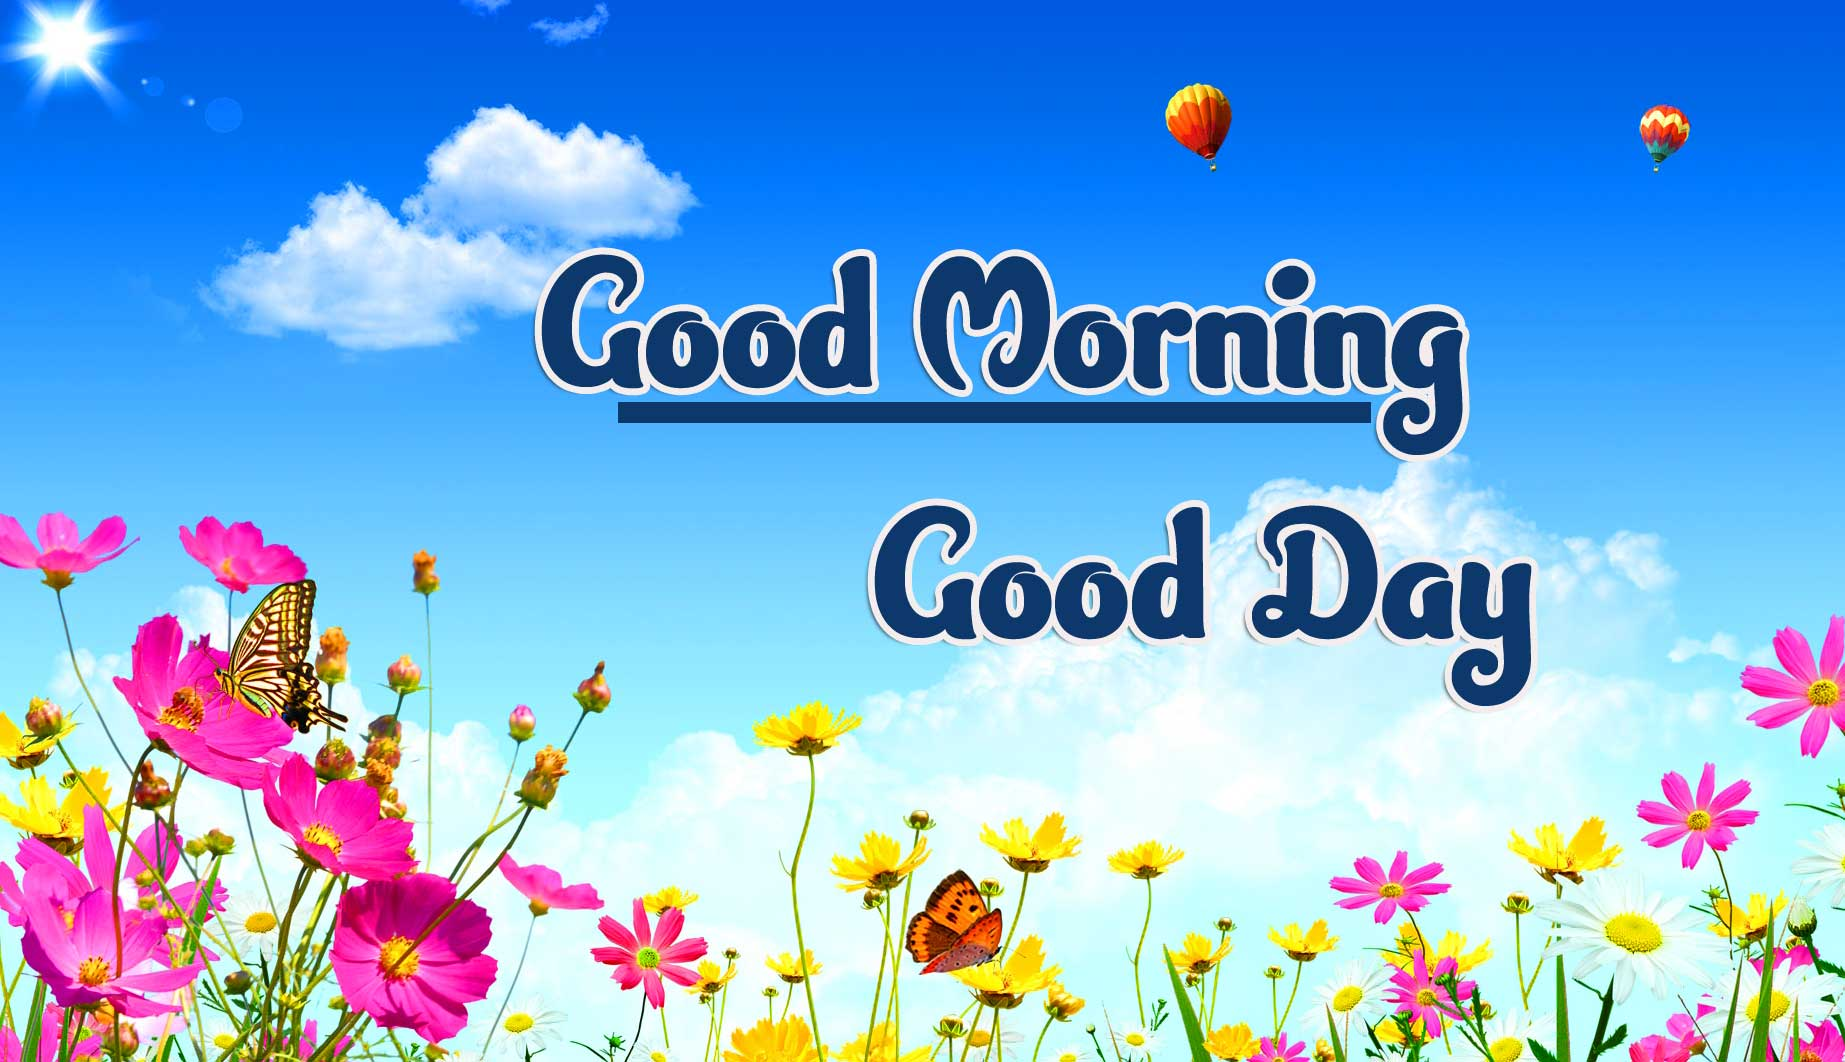 Beautiful Good Morning Wishes Images Pics Download Free